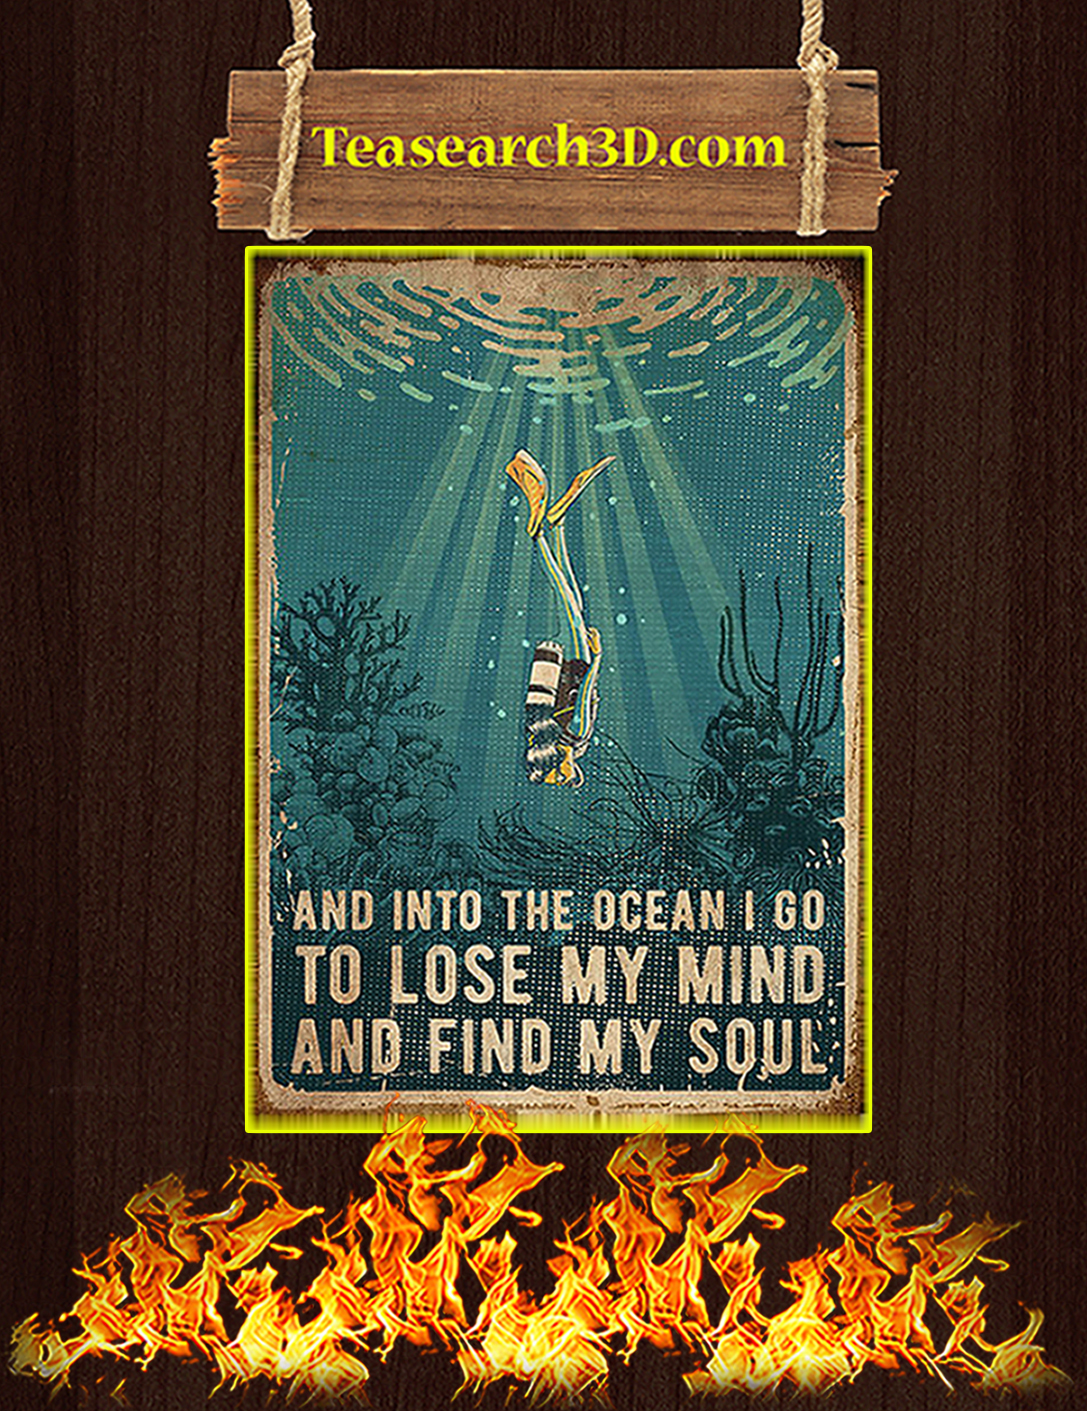 Scuba And into the ocean I go to lose my mind and find my soul poster A2